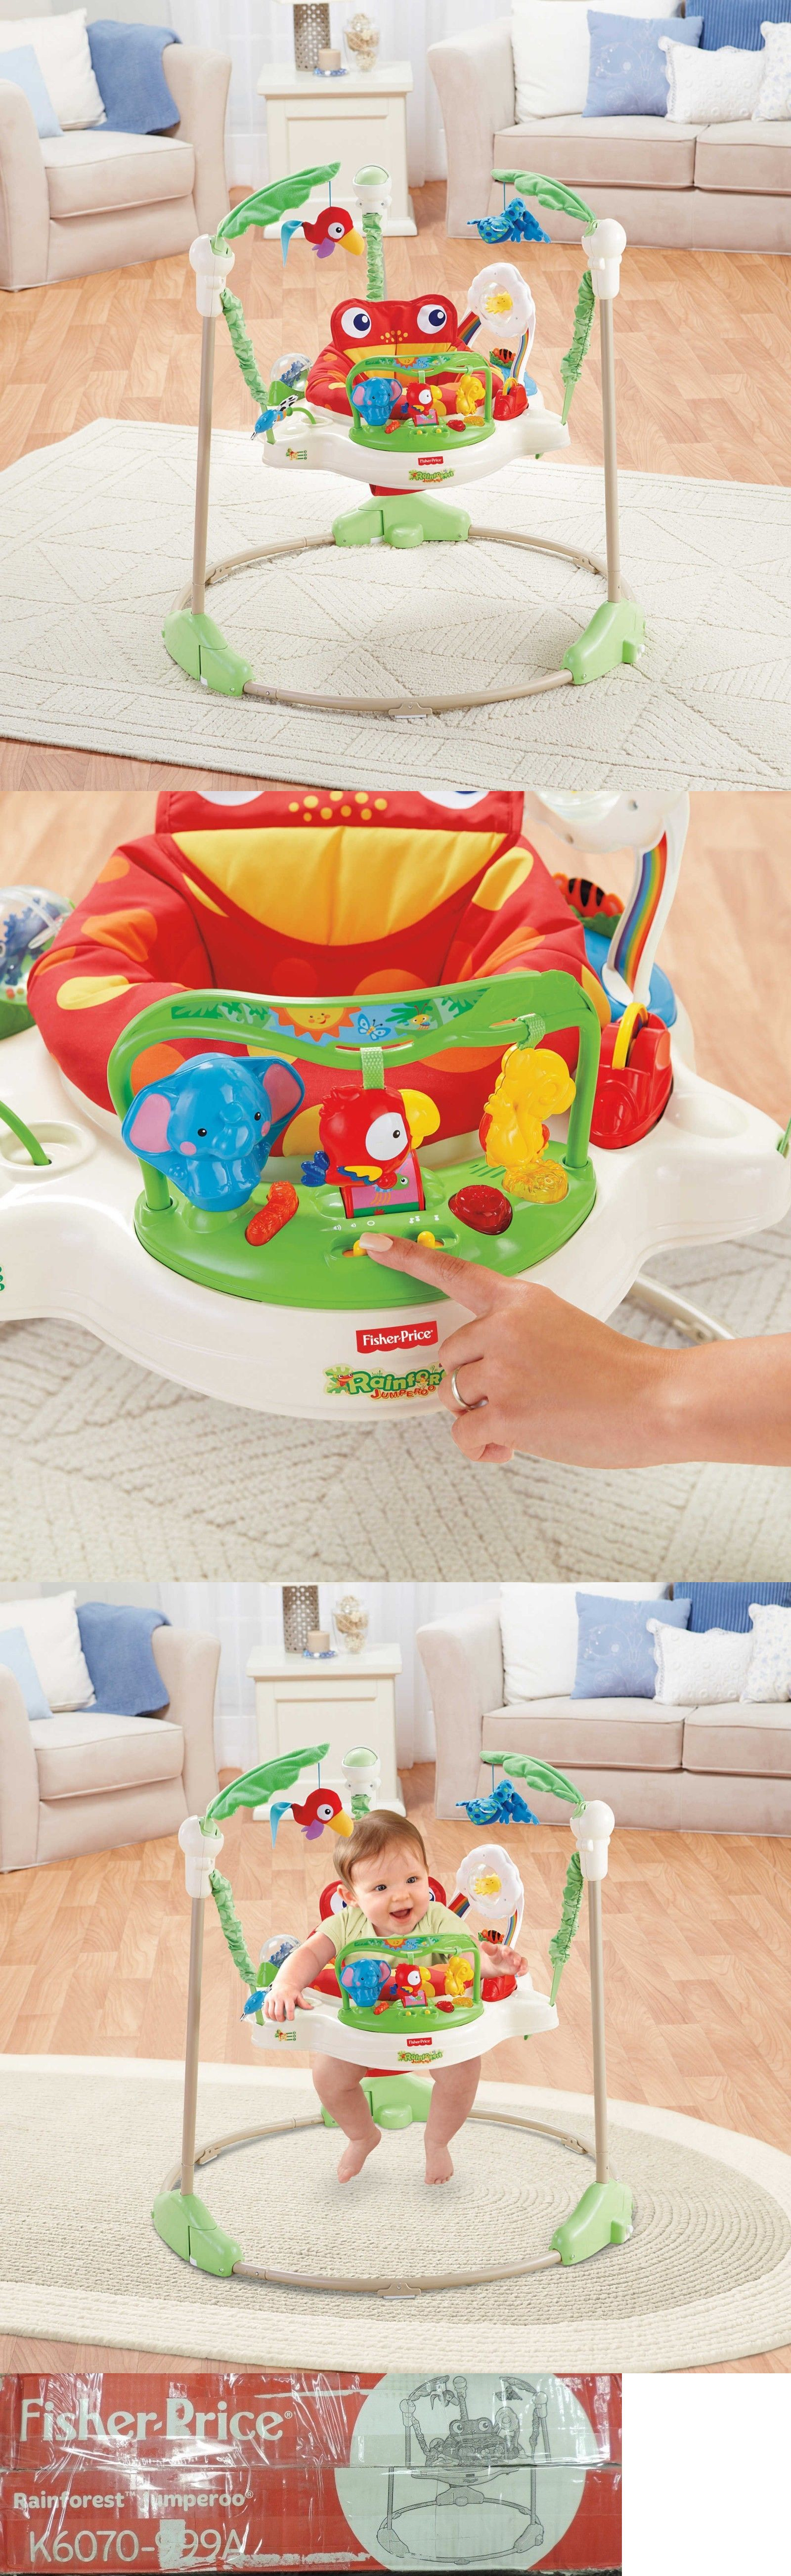 f2e34e3eb Baby Jumping Exercisers 117032  Baby Jumper Play Seat Fisher Price ...